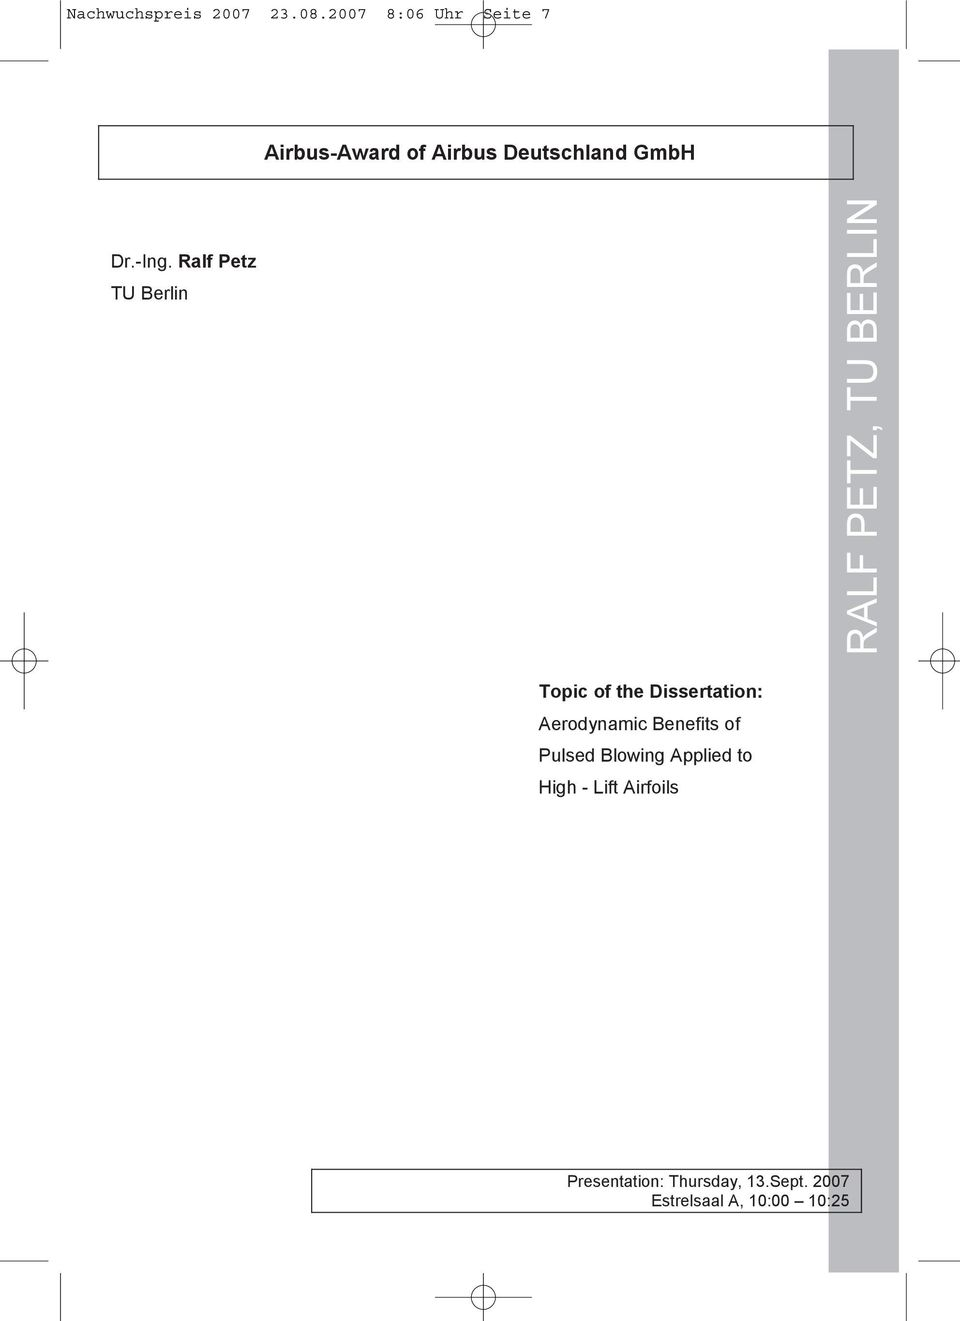 Ralf Petz TU Berlin RALF PETZ, TU BERLIN Topic of the Dissertation: